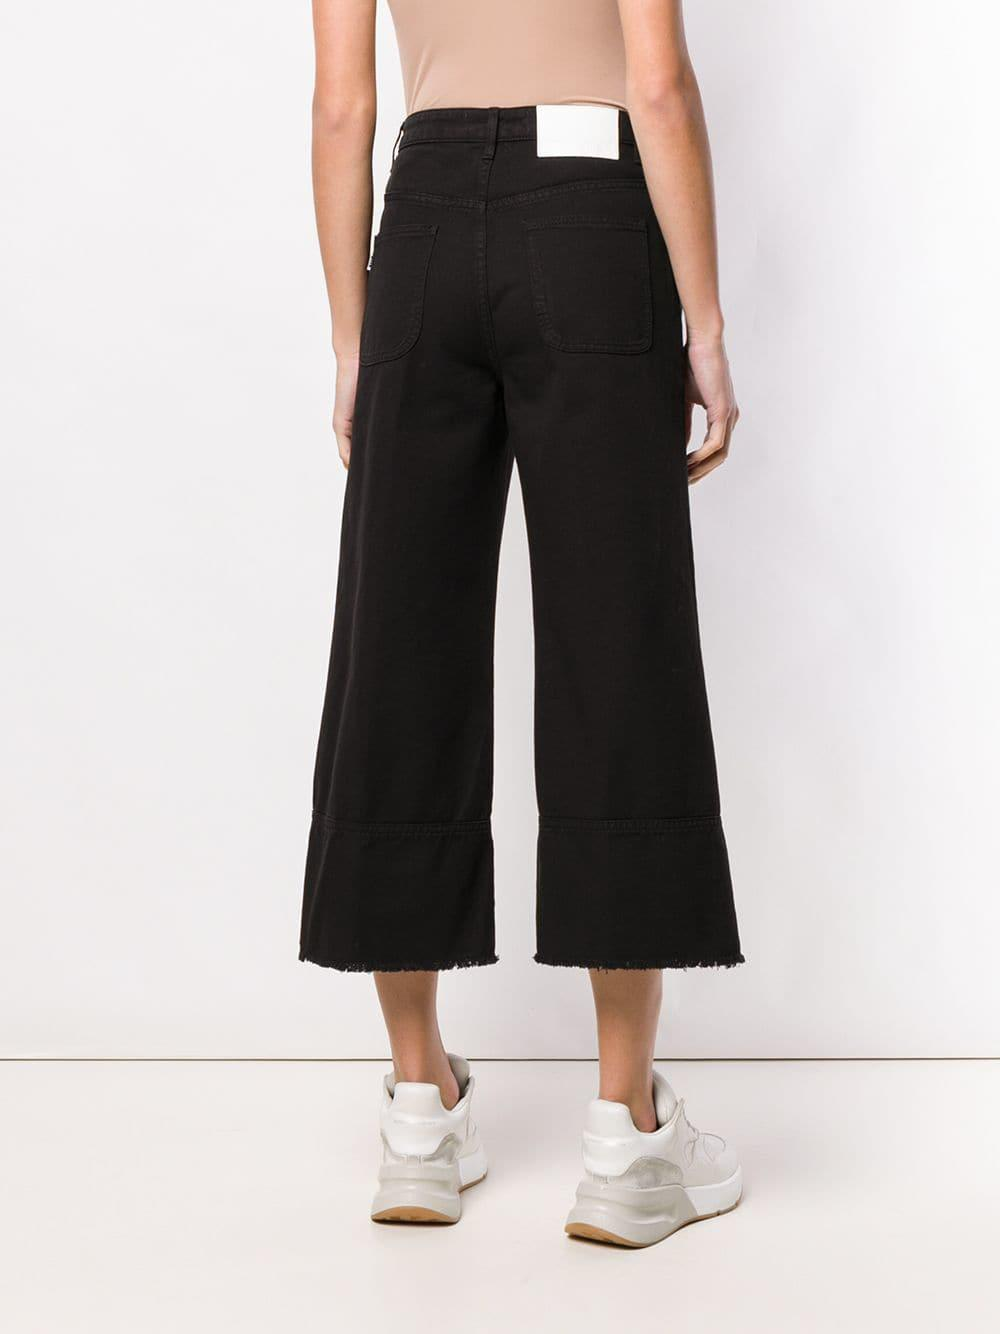 Vaqueros capri anchos MSGM de Denim de color Negro